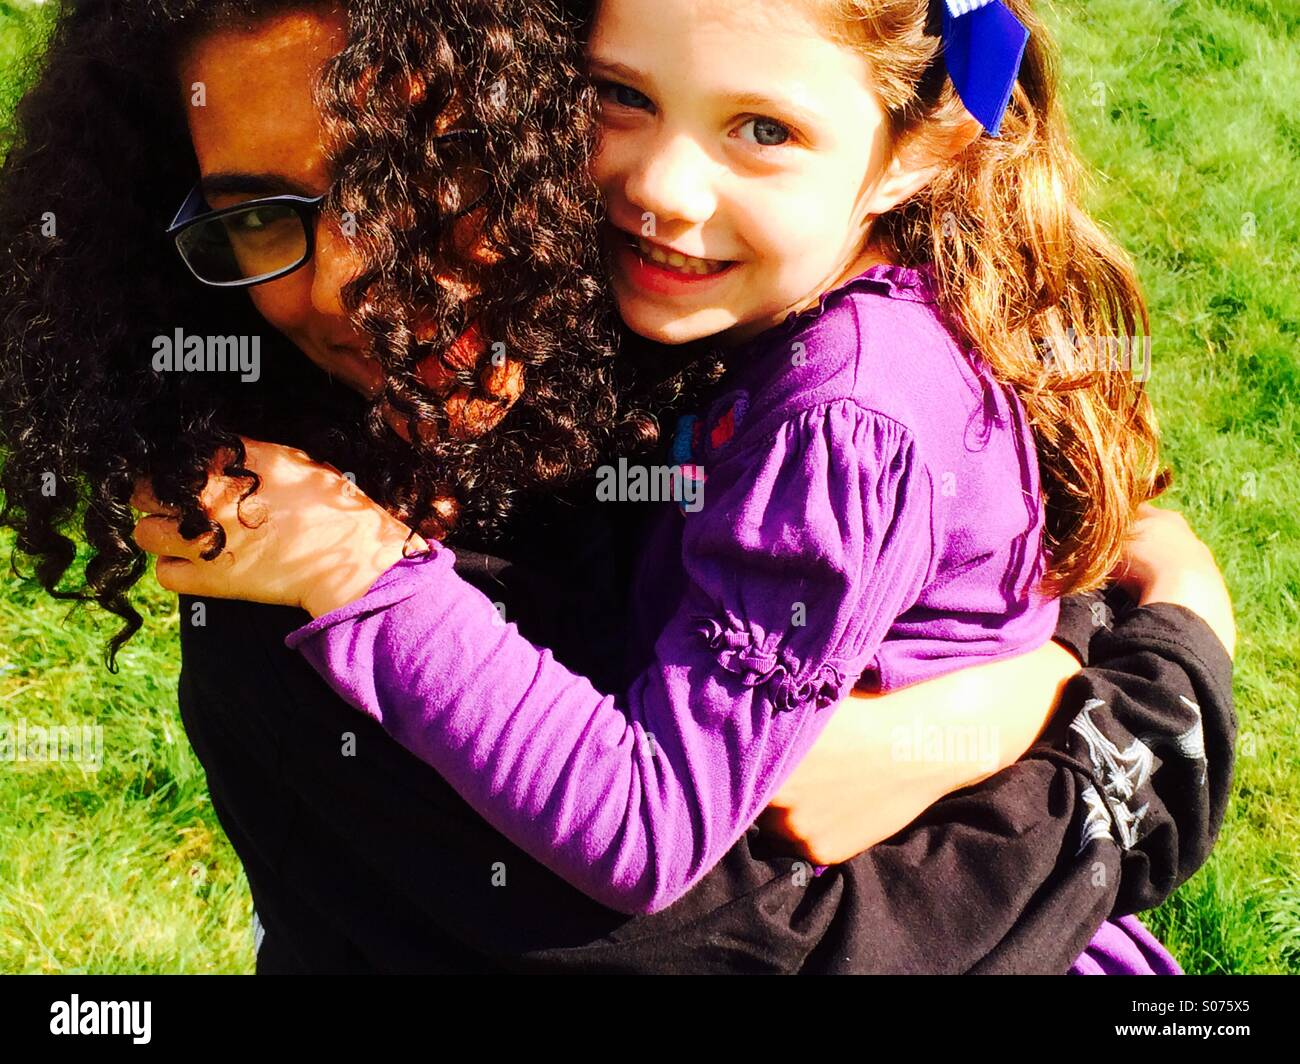 13 year old girl and 5 year old girl hugging - Stock Image